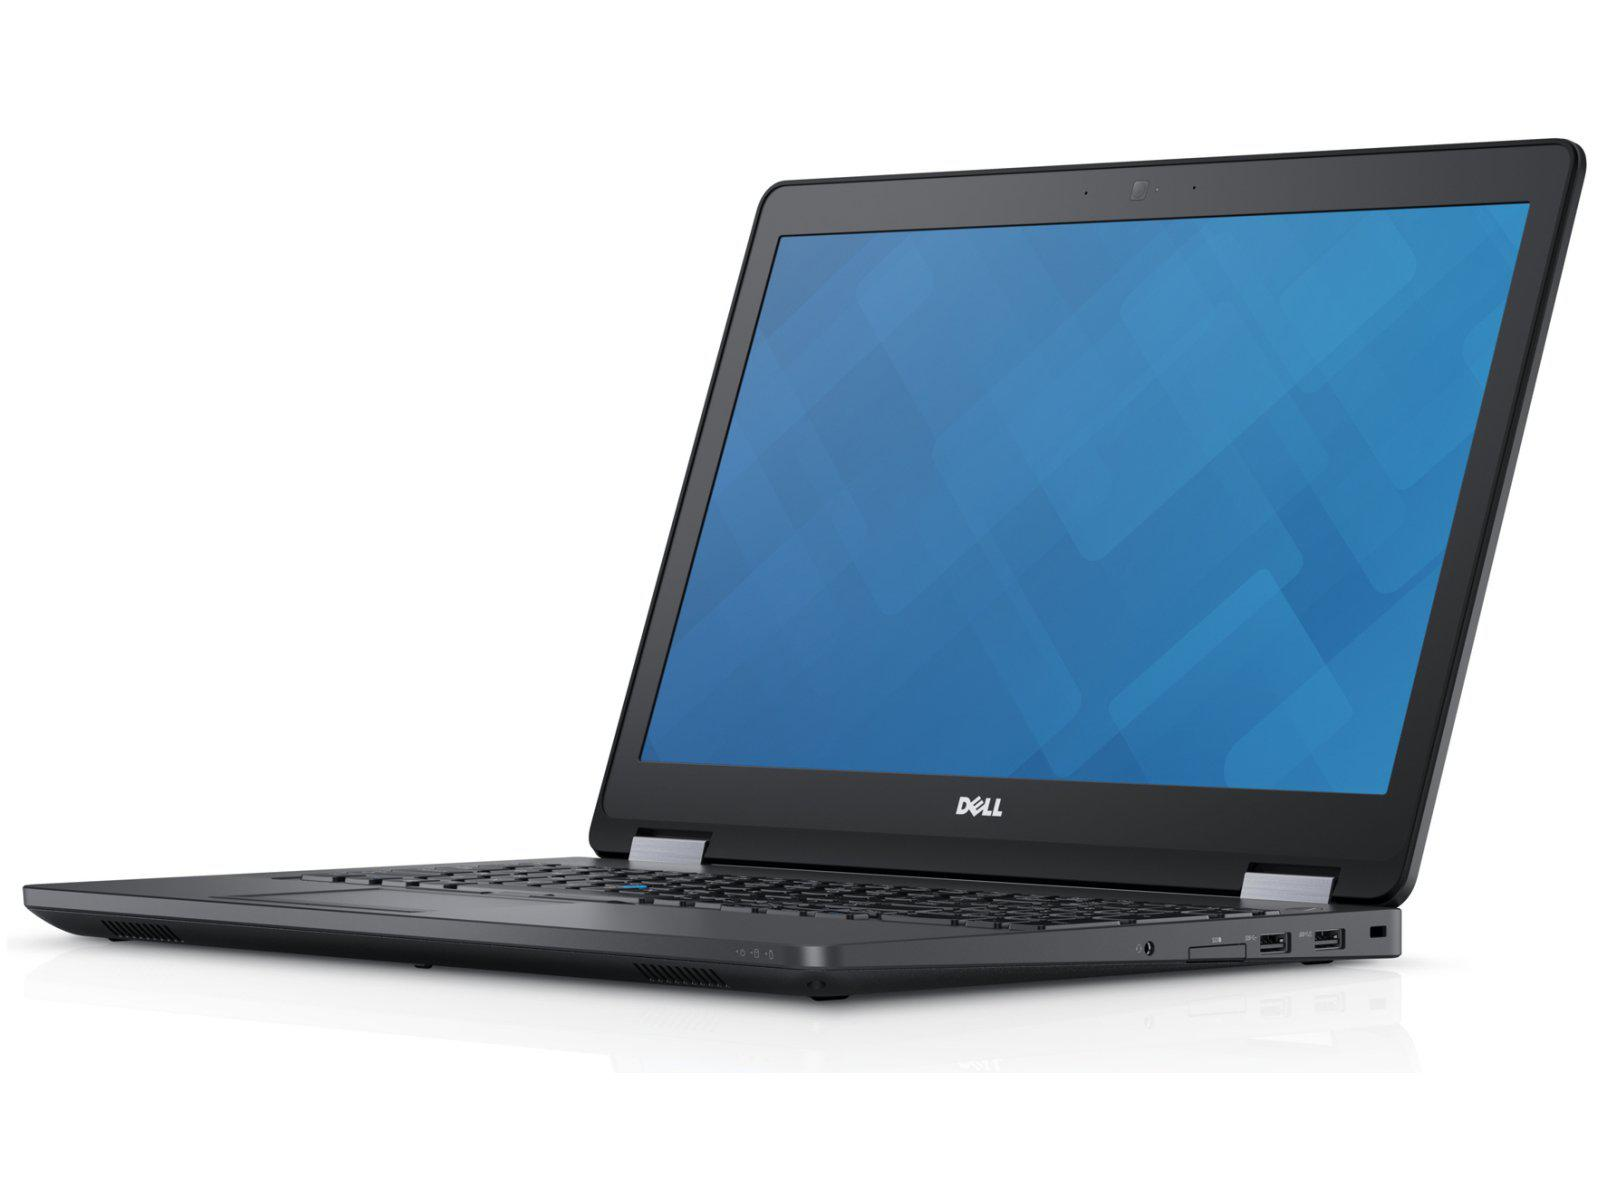 Dell Precision 15 M3510 I7 2.7Ghz 15.6""